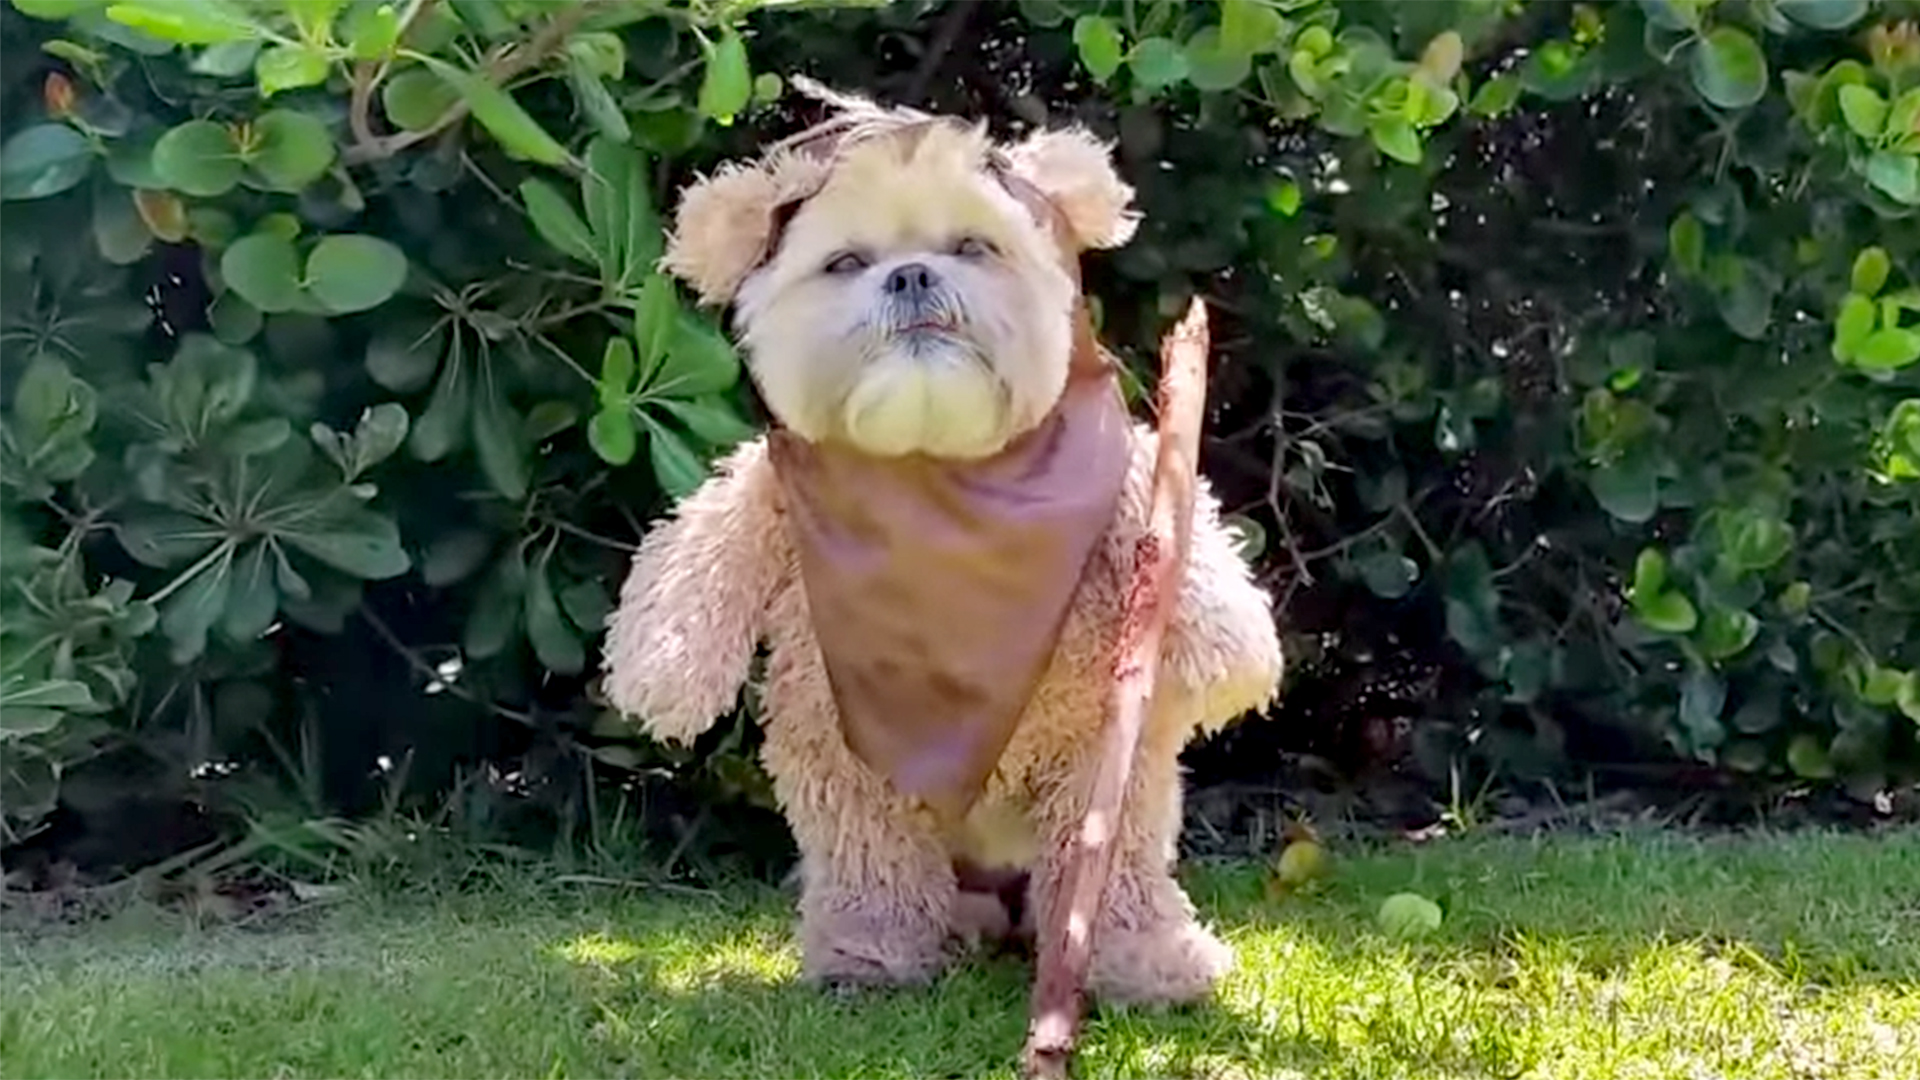 Dogs in Star Wars Costumes (Darth Vader, Yoda, Ewok) 29 Pictures ...